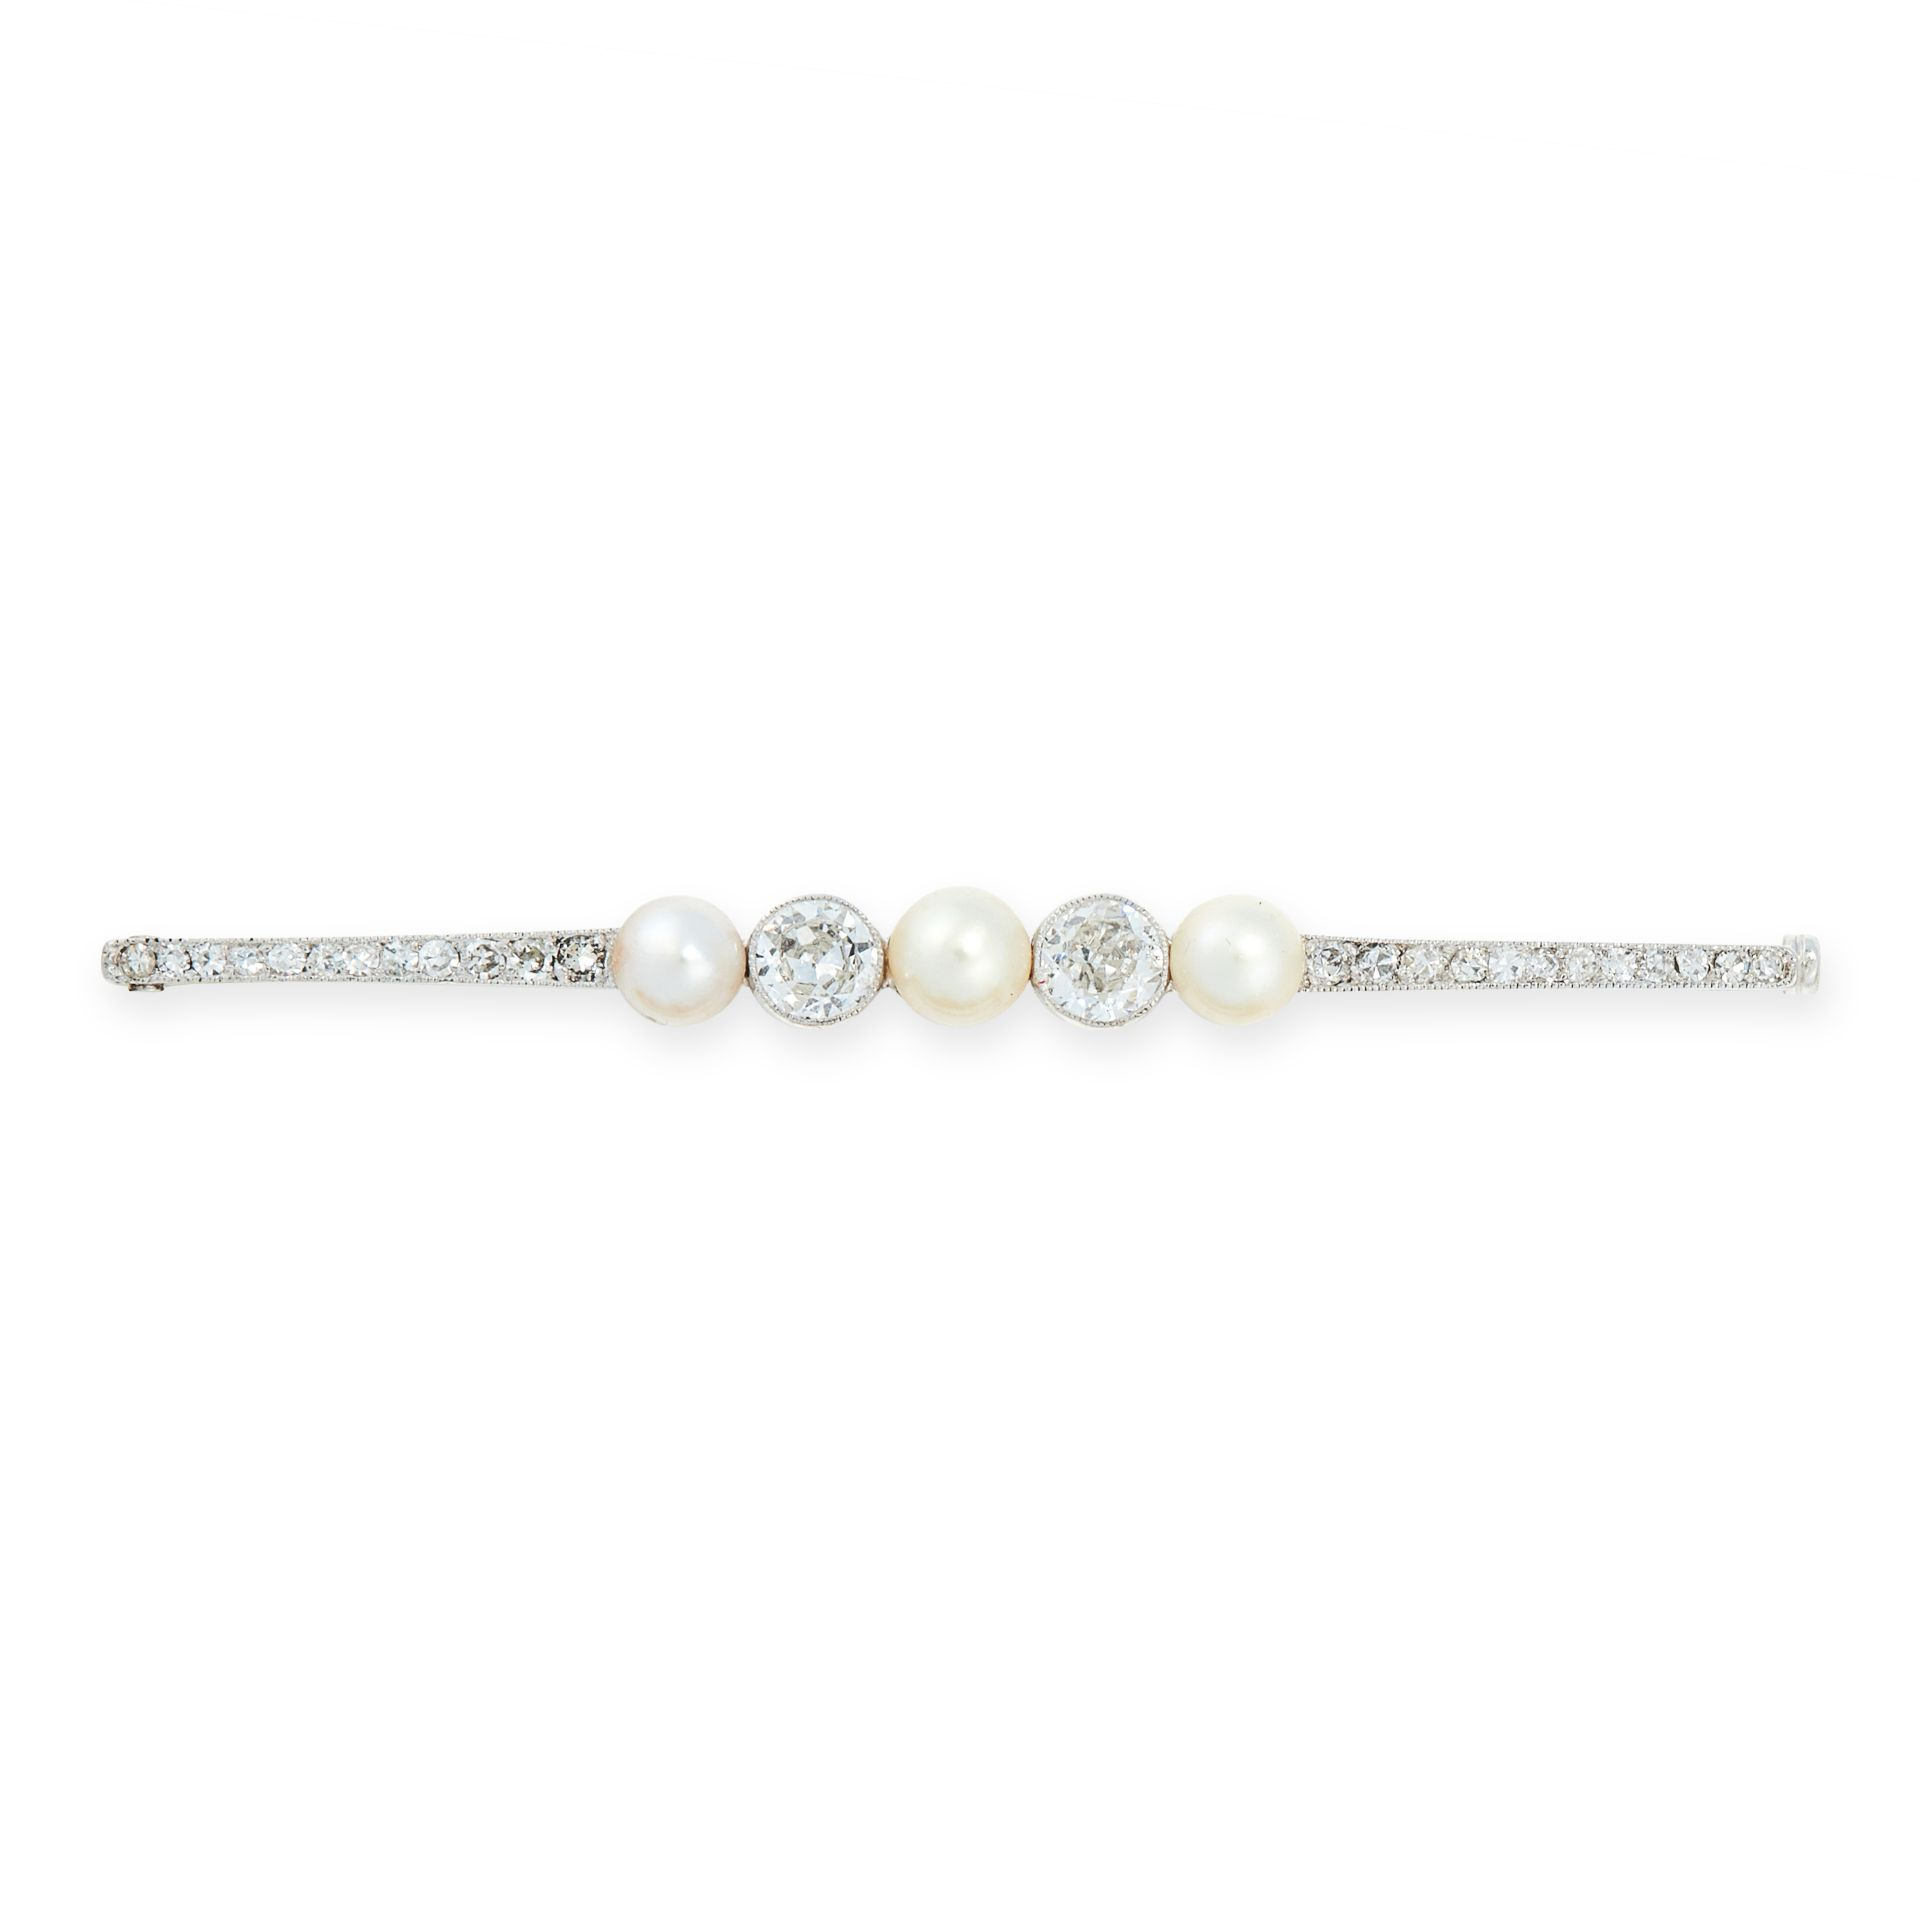 A PEARL AND DIAMOND BAR BROOCH, CIRCA 1940 in 14ct white gold, set with a trio of pearls